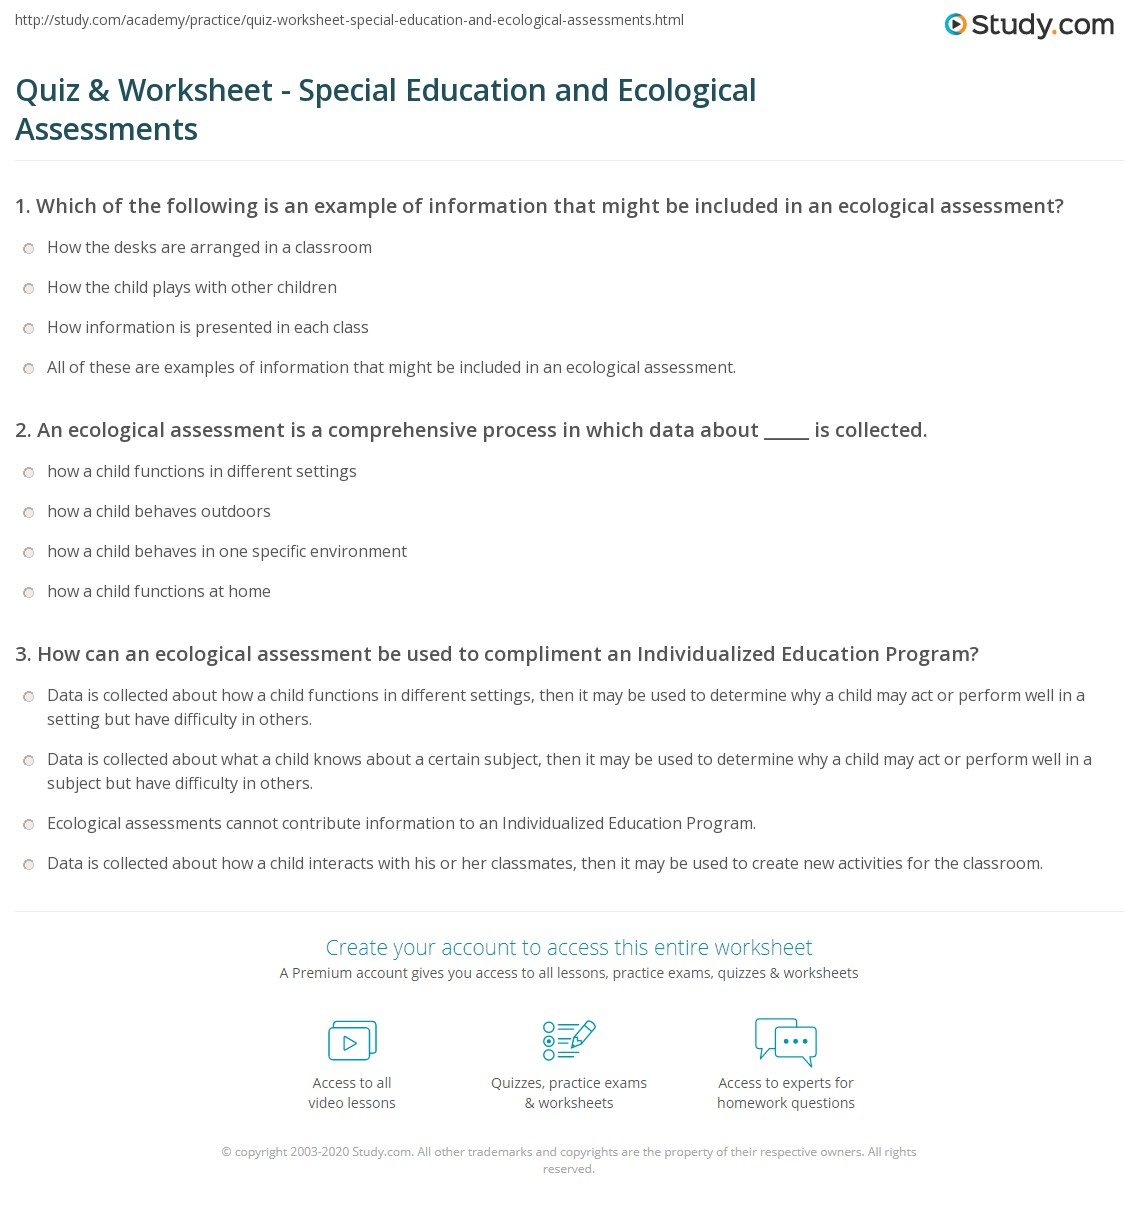 Ecosystem Worksheet For Special Ed: Quiz & Worksheet   Special Education and Ecological Assessments    ,